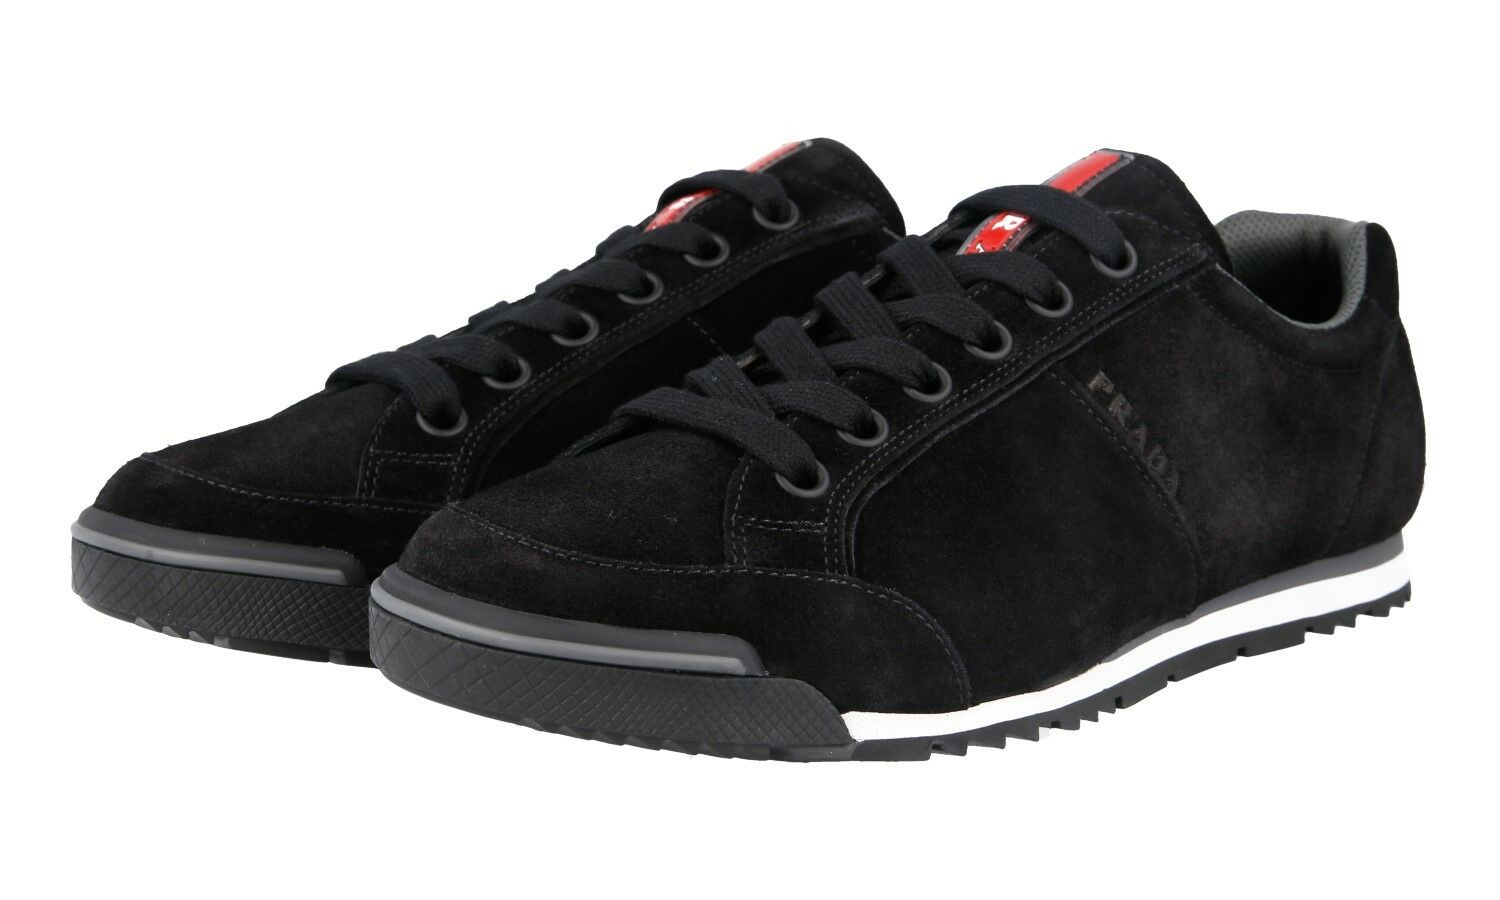 AUTH LUXURY PRADA SNEAKERS SHOES 4E3230 BLACK SUEDE NEW 7,5 41,5 42